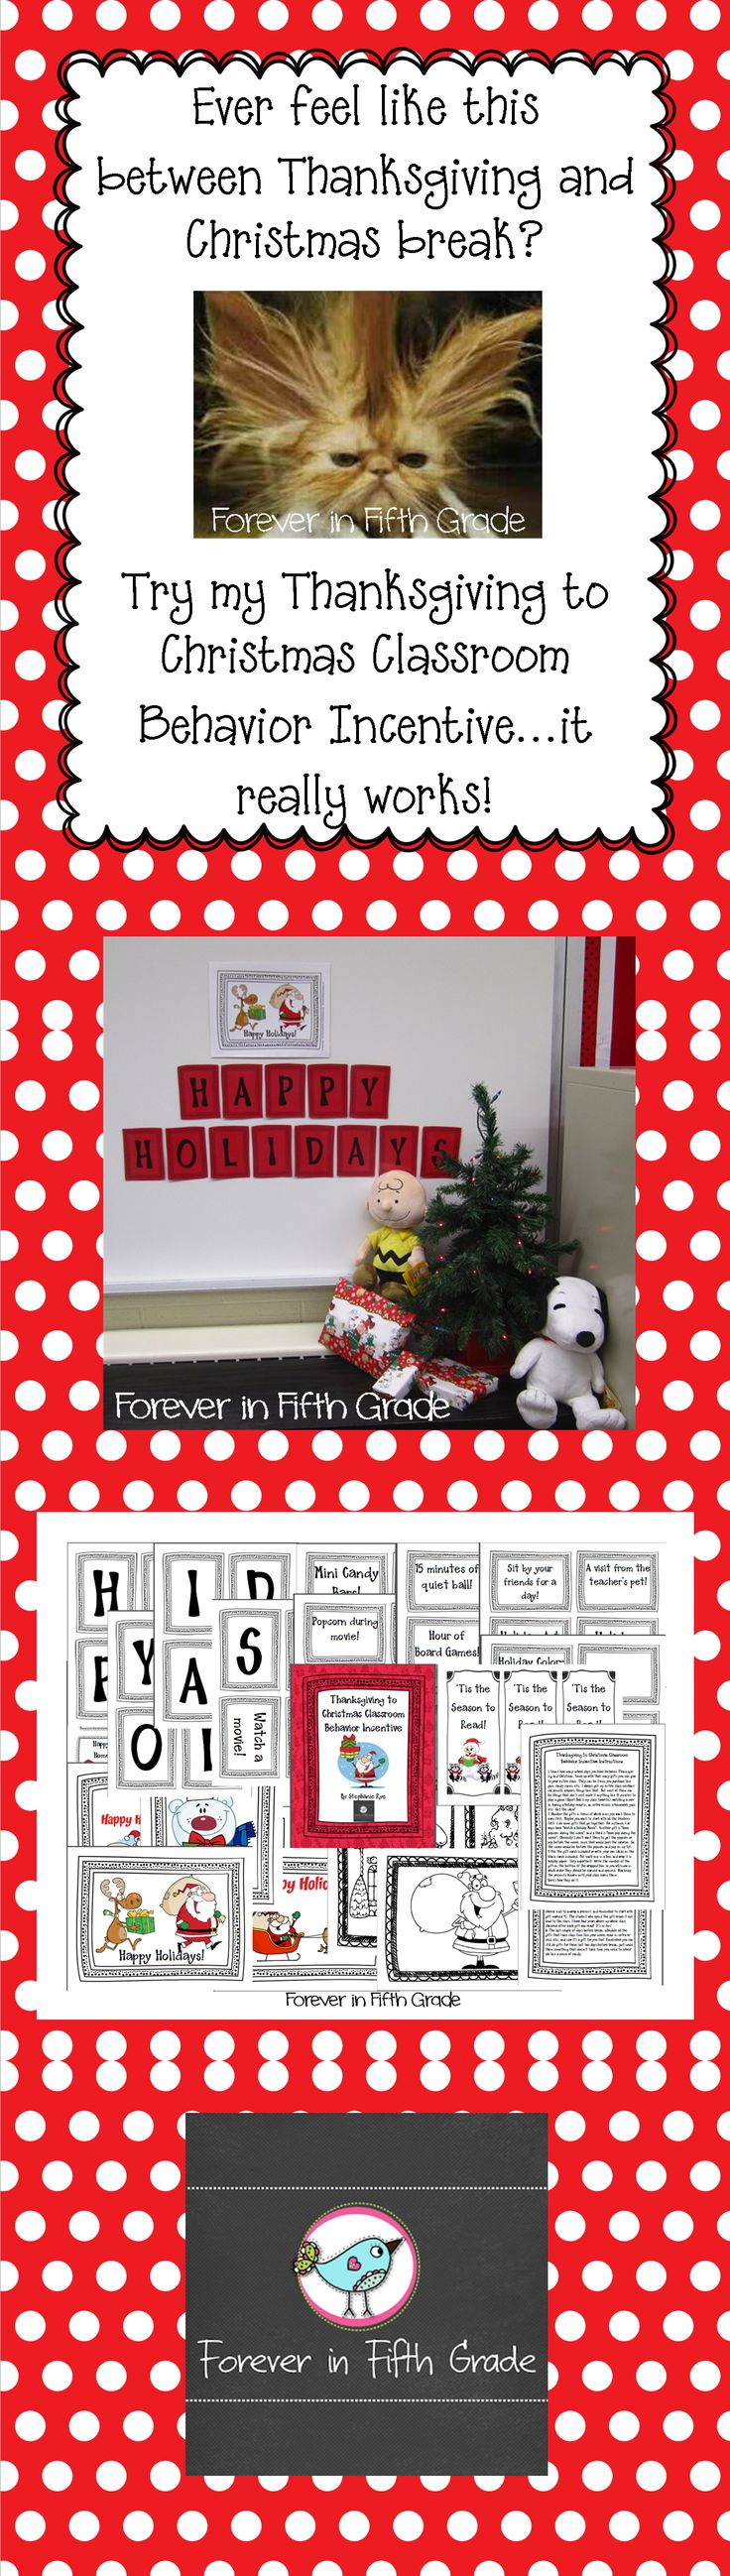 Keep your sanity with this Classroom Behavior Incentive!  $